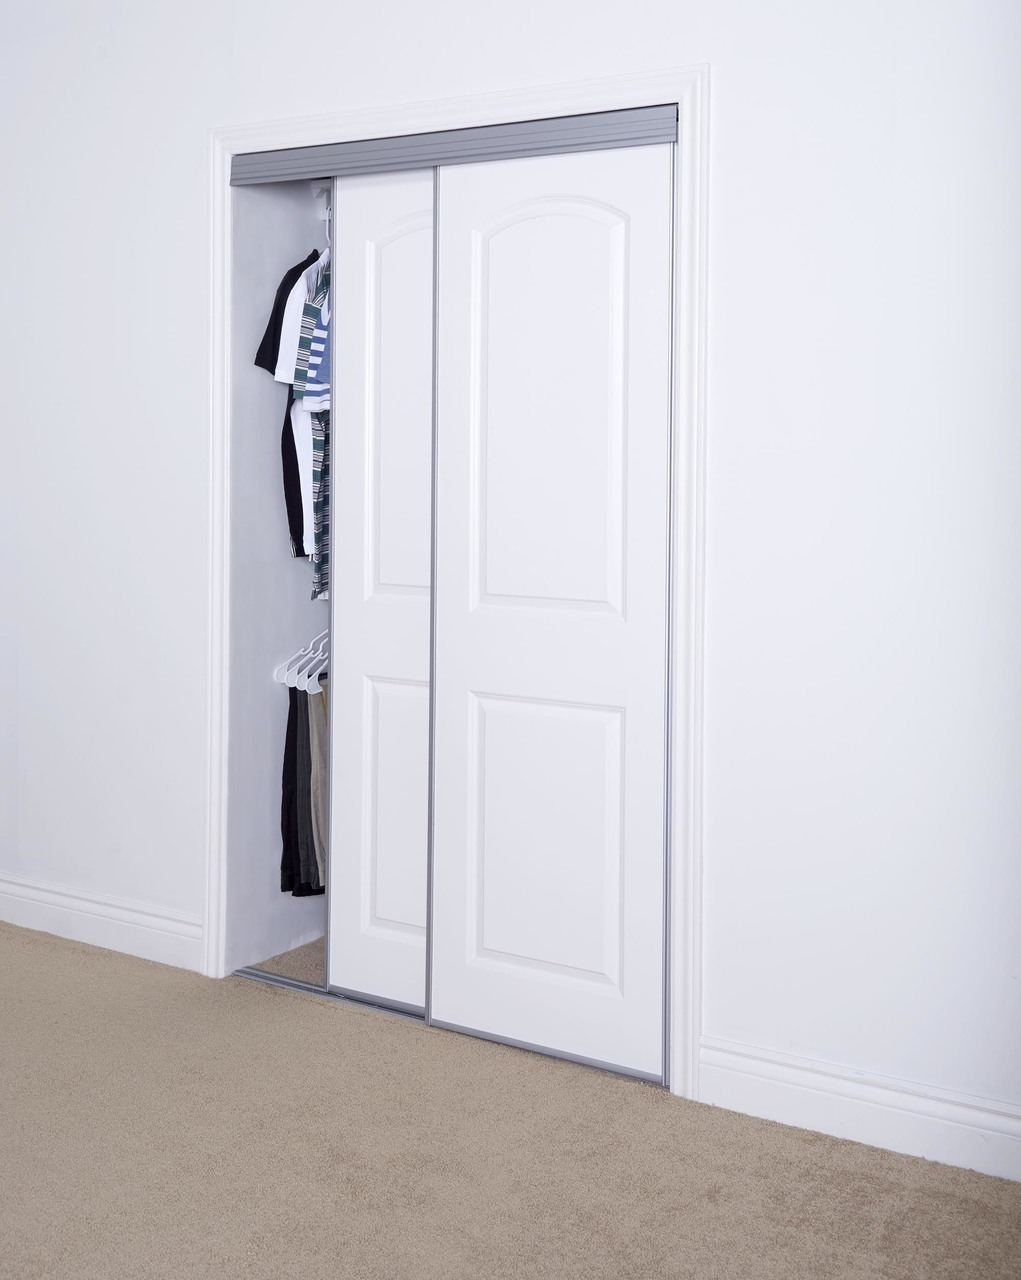 Sliding Bypass Door With Primed 2 Panel Curved Top Design